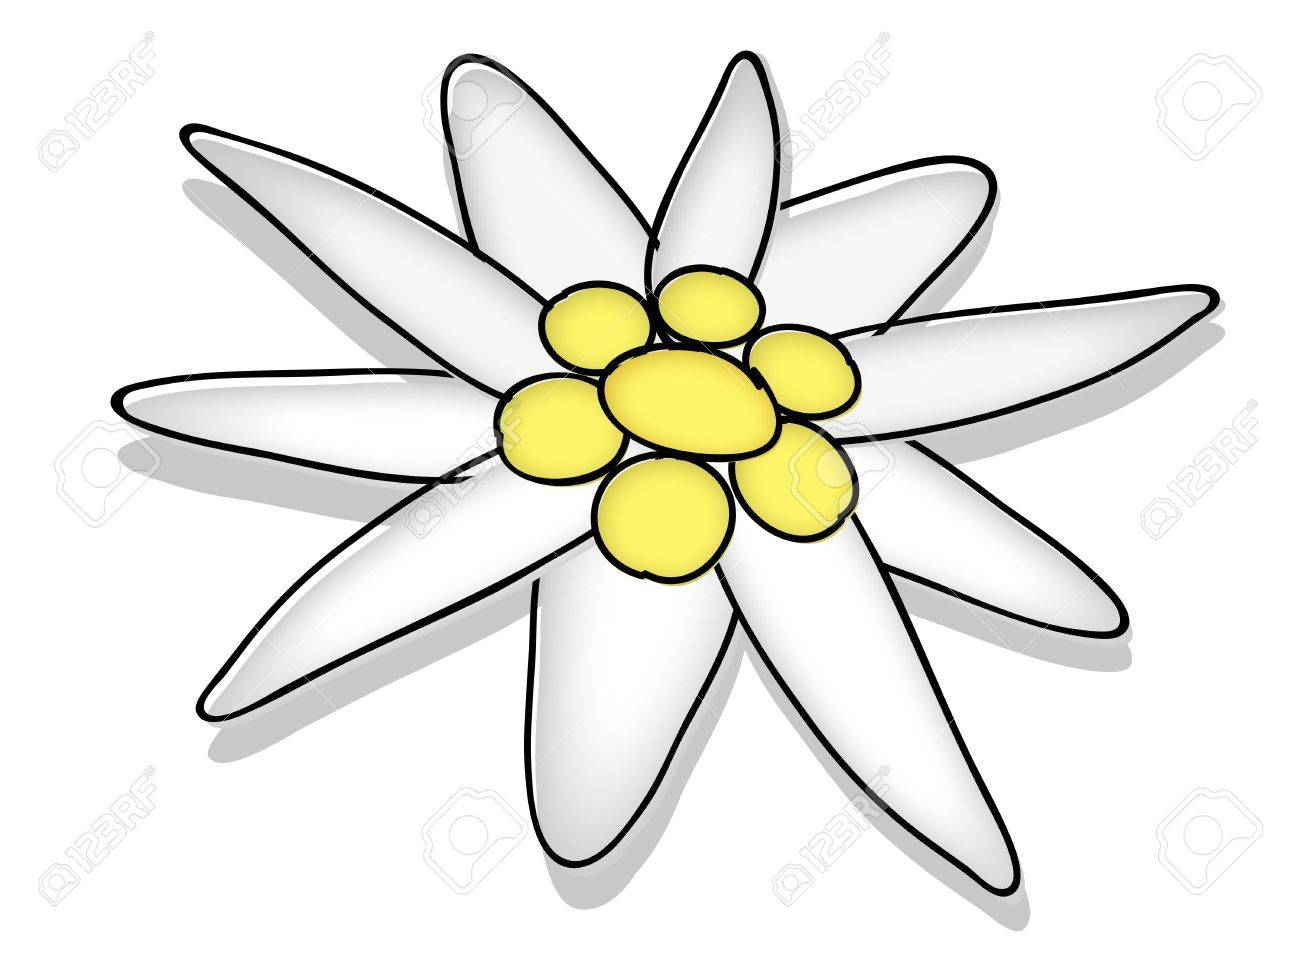 1300x974 Edelweiss Blossom Stock Photo, Picture And Royalty Free Image